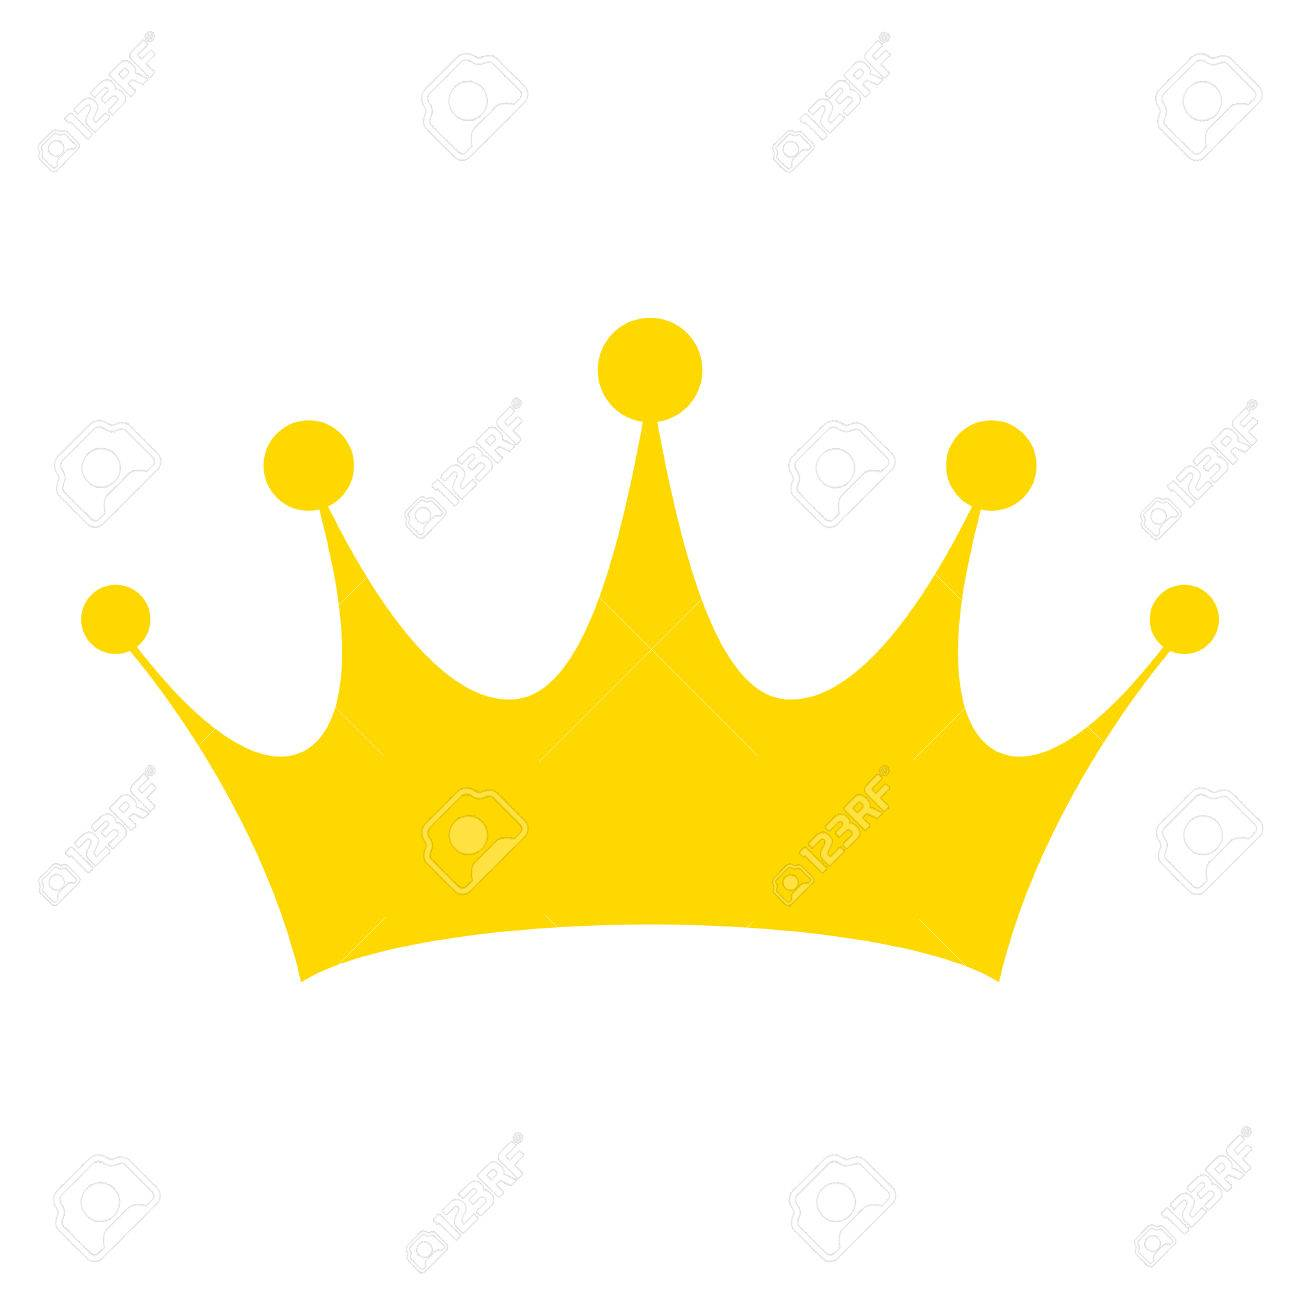 crown vector icon royalty free cliparts vectors and stock rh 123rf com crown vector outline crown vector outline